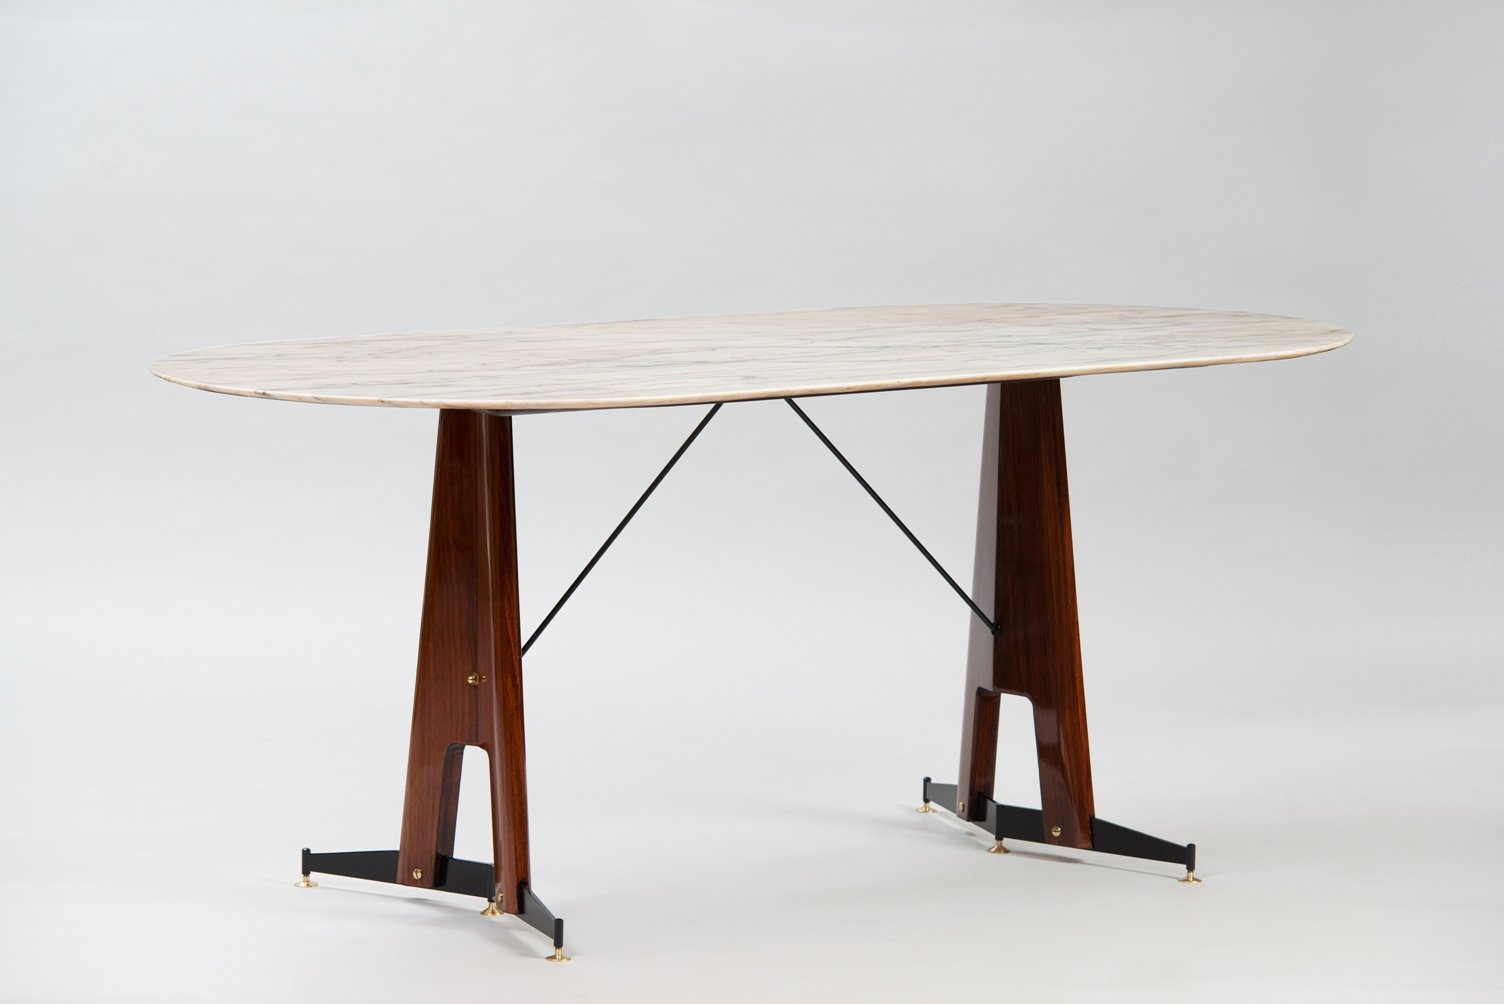 Table Salle A Manger Marbre Design